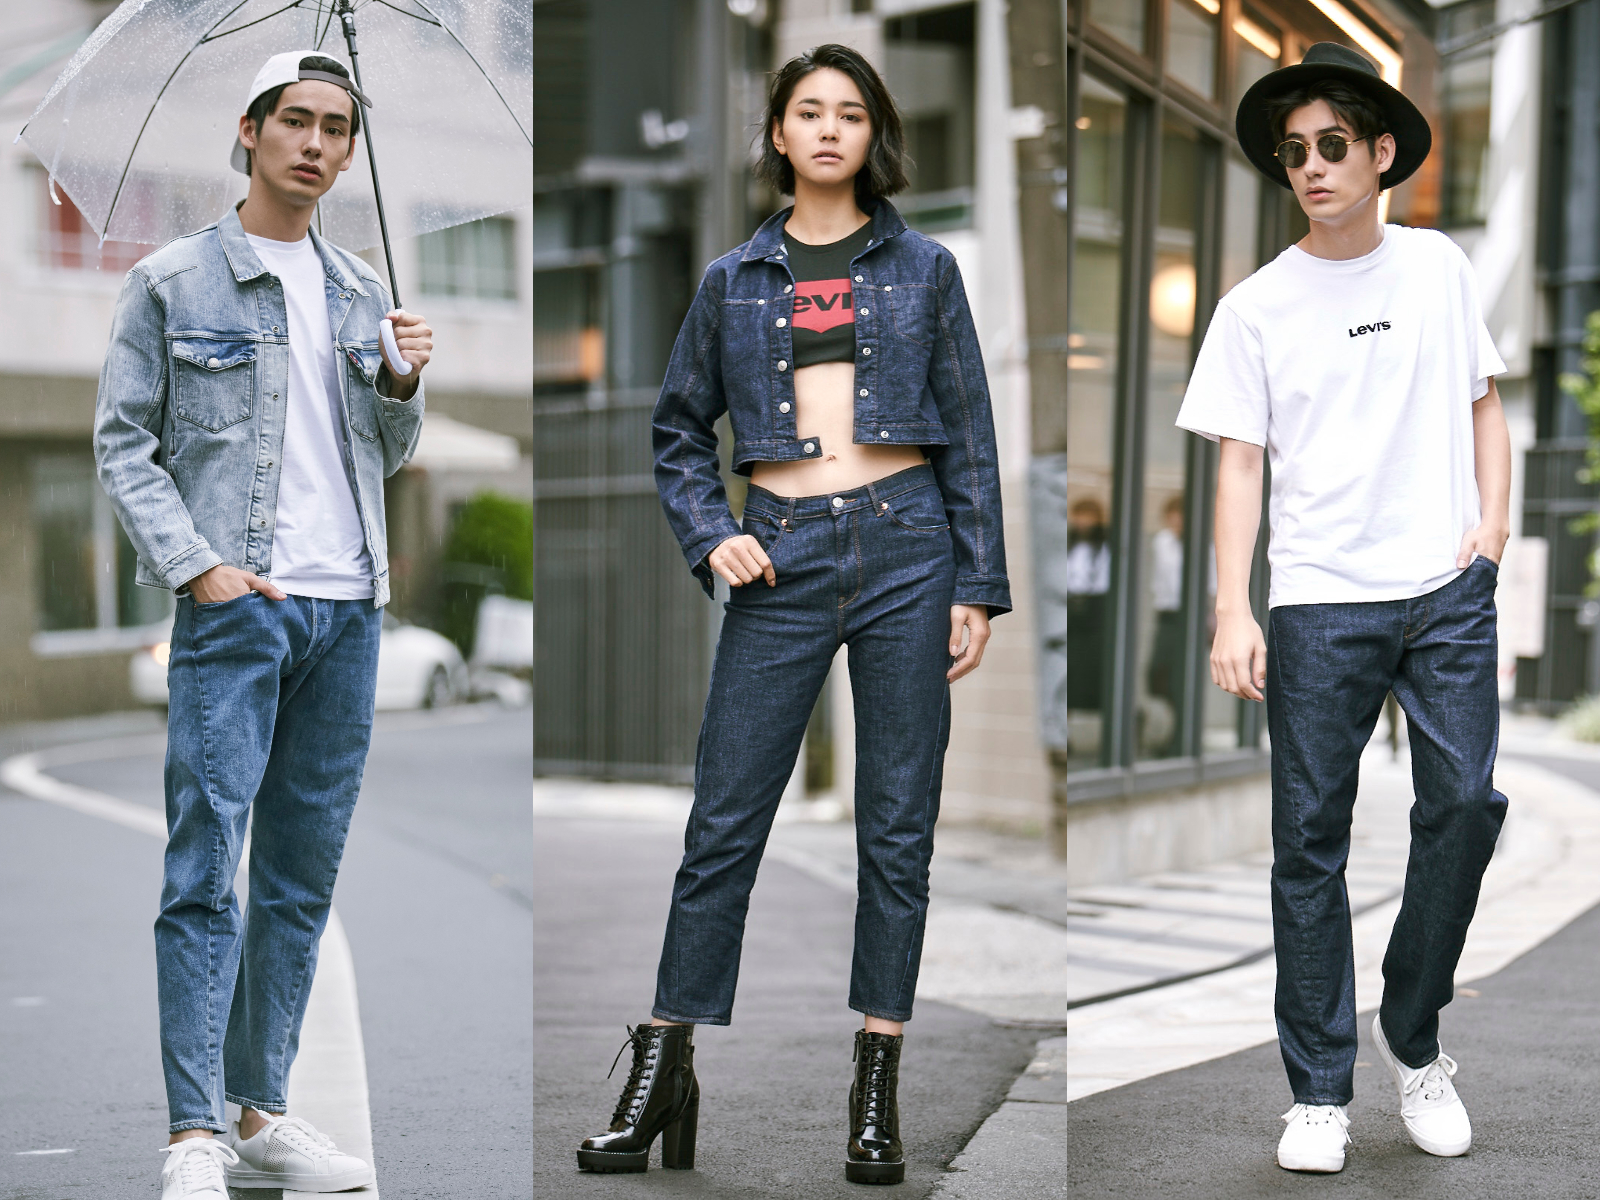 超帥牛仔褲 LEVI'S®新款 LEVI'S® ENGINEERED JEANS™,復刻丹寧穿搭